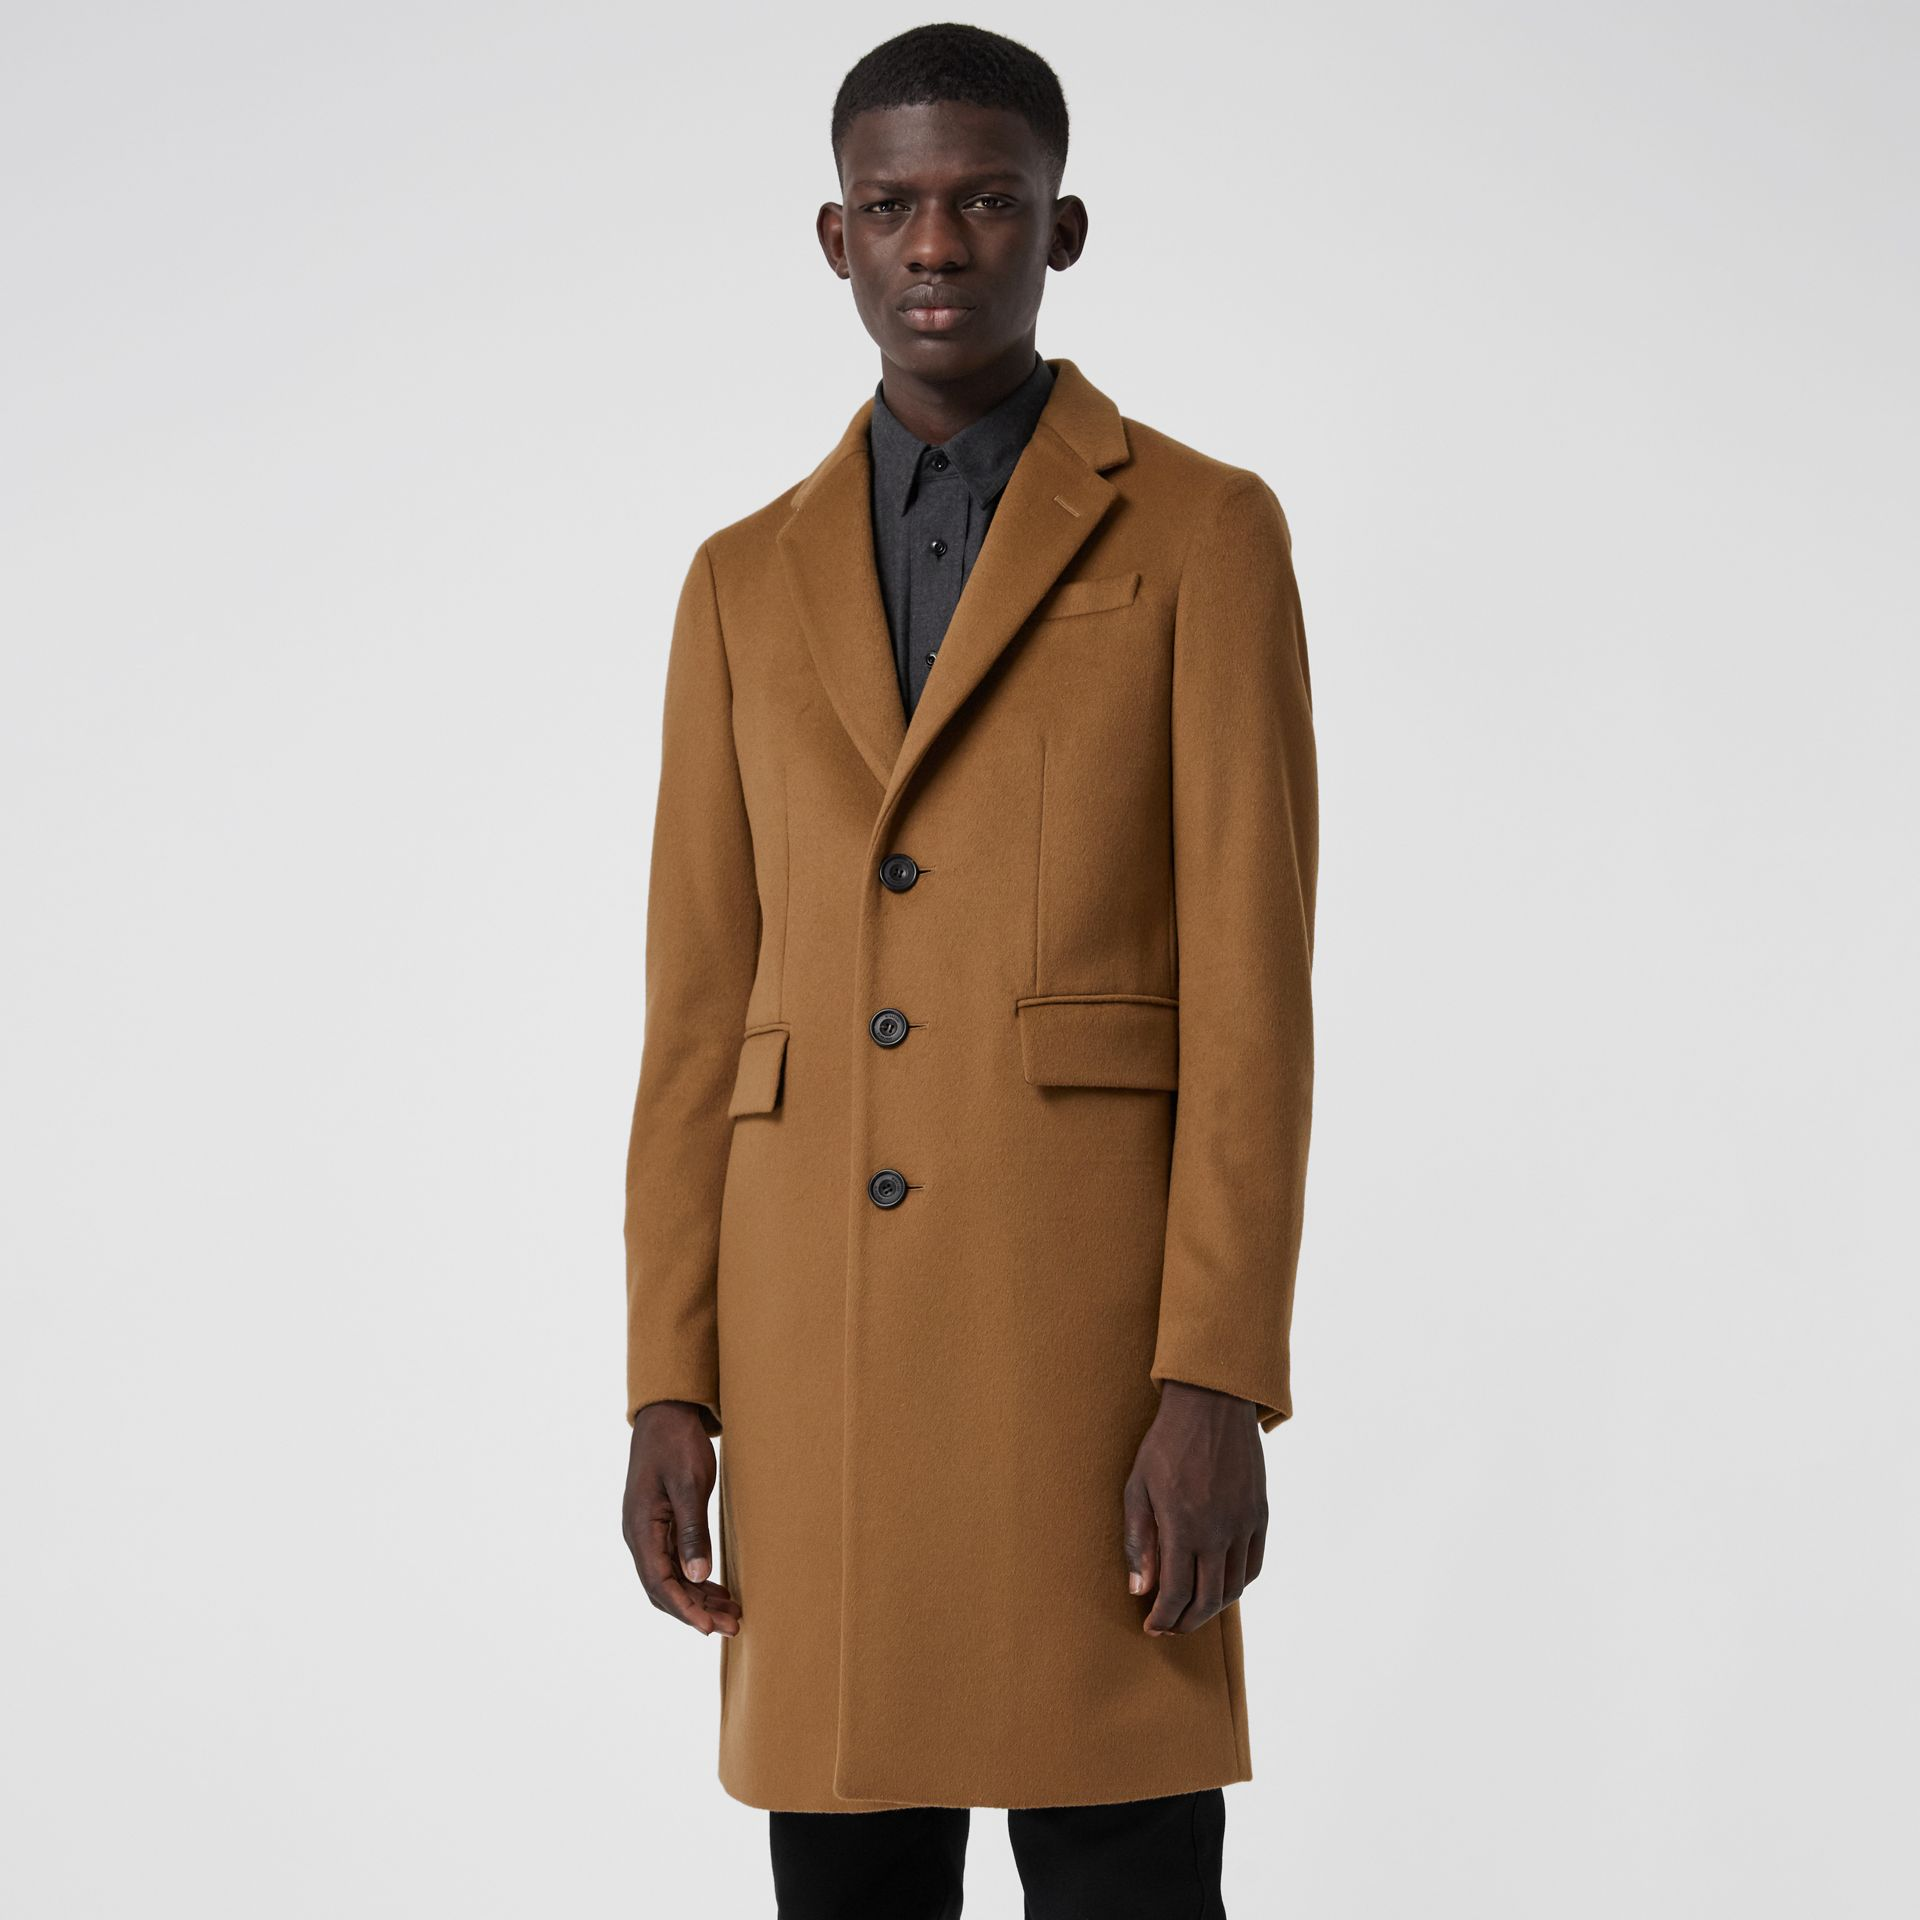 Wool Cashmere Tailored Coat in Dark Camel - Men | Burberry - gallery image 5